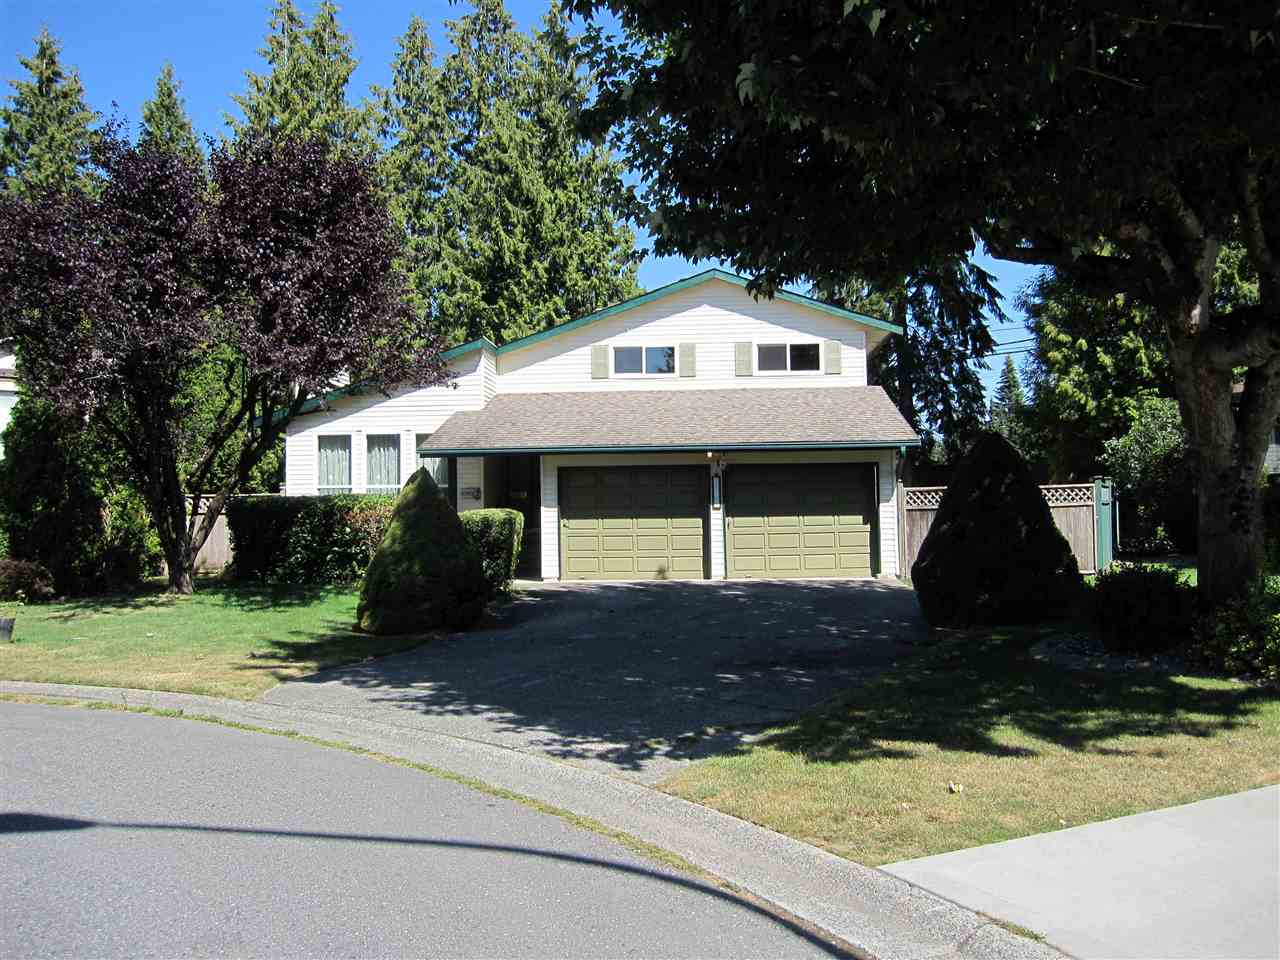 Main Photo: 21155 CUTLER Place in Maple Ridge: Southwest Maple Ridge House for sale : MLS® # R2101980